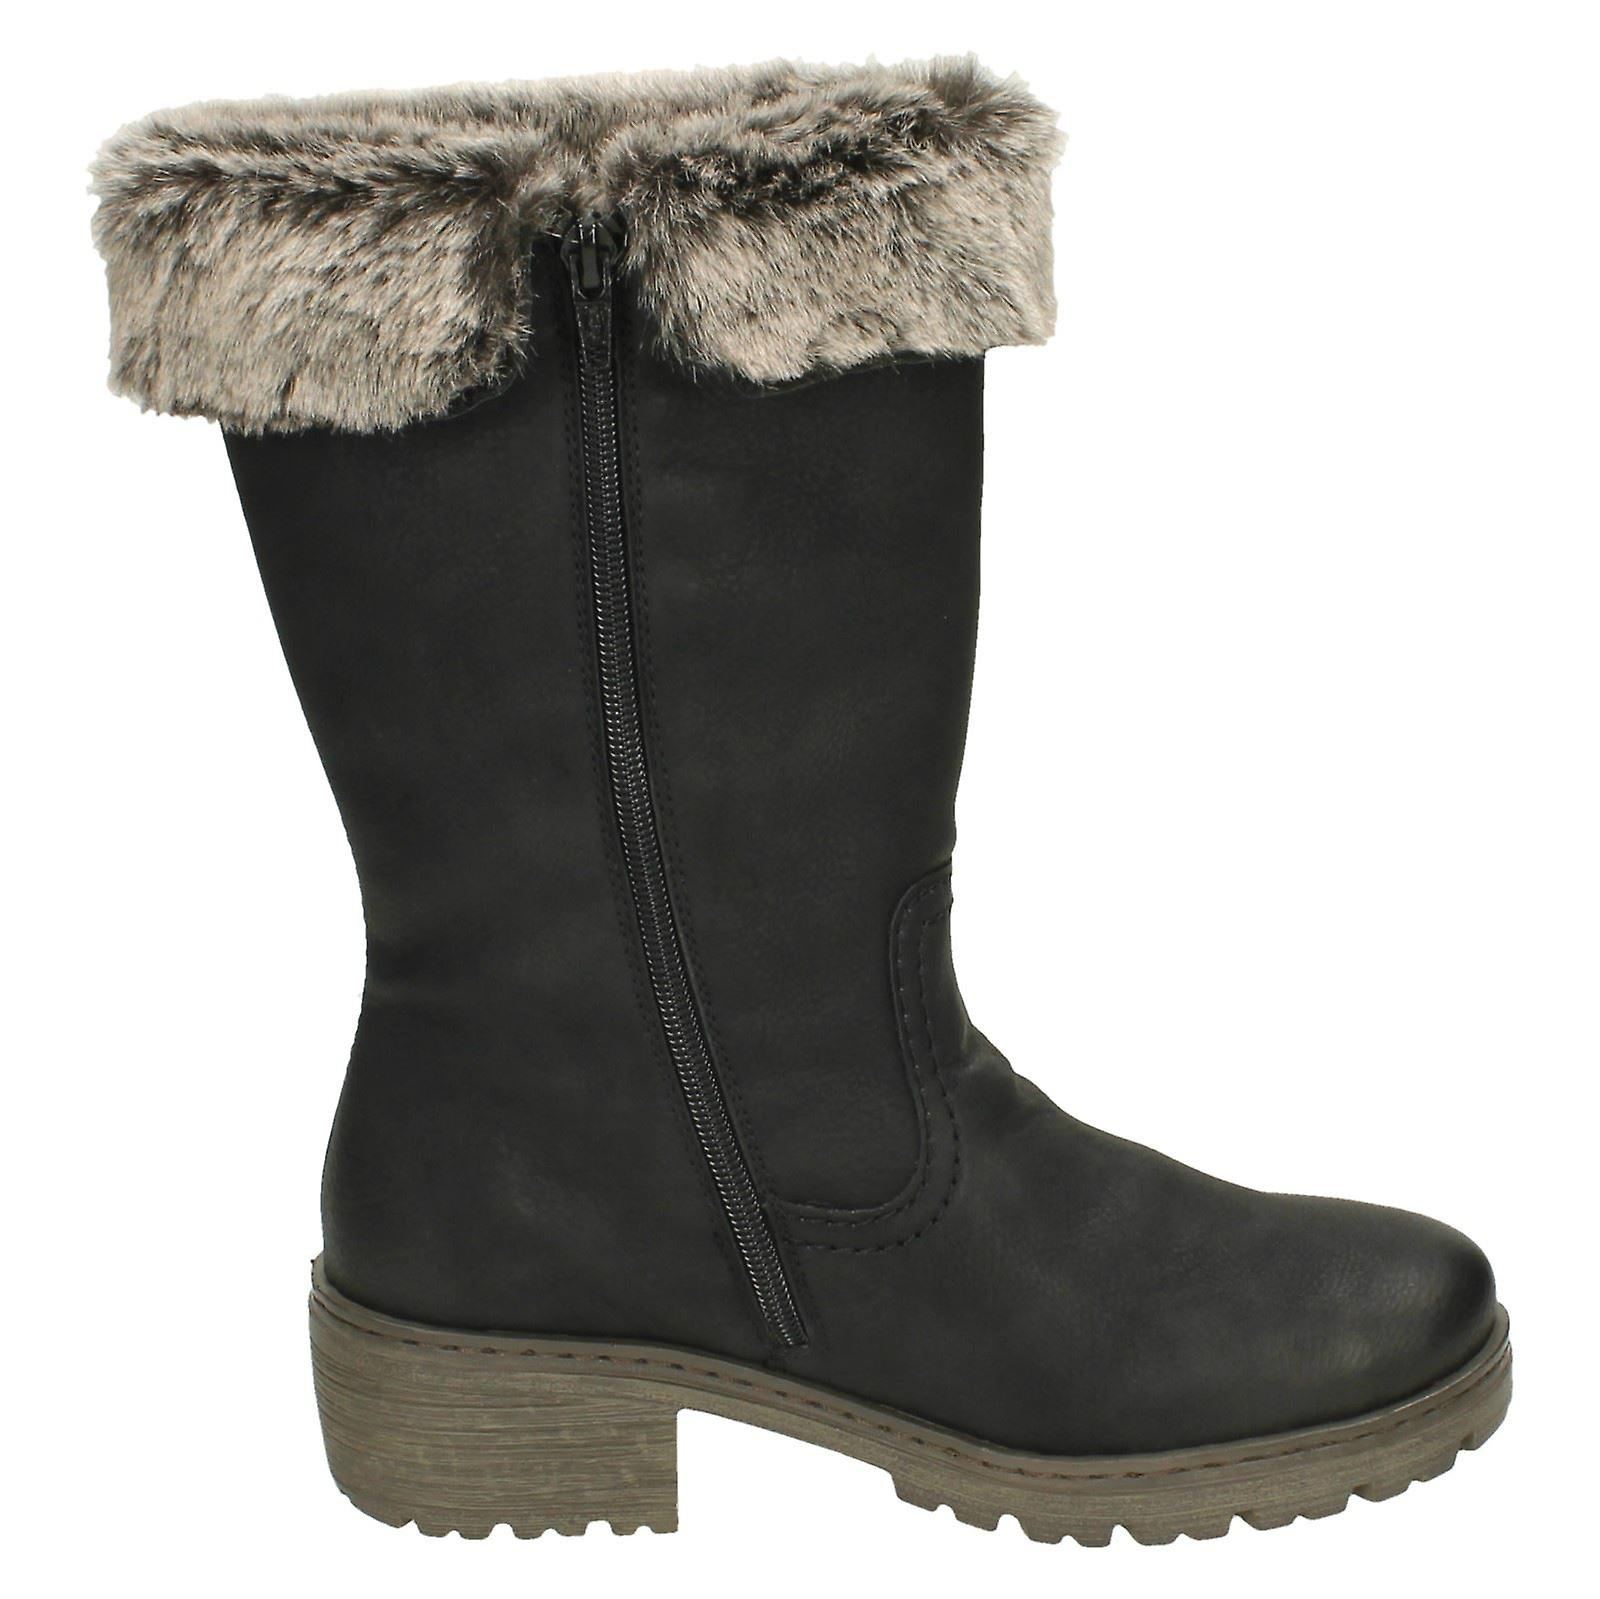 Y4590 Rieker Warm Ladies Boots Lined AaP1R1Hwq